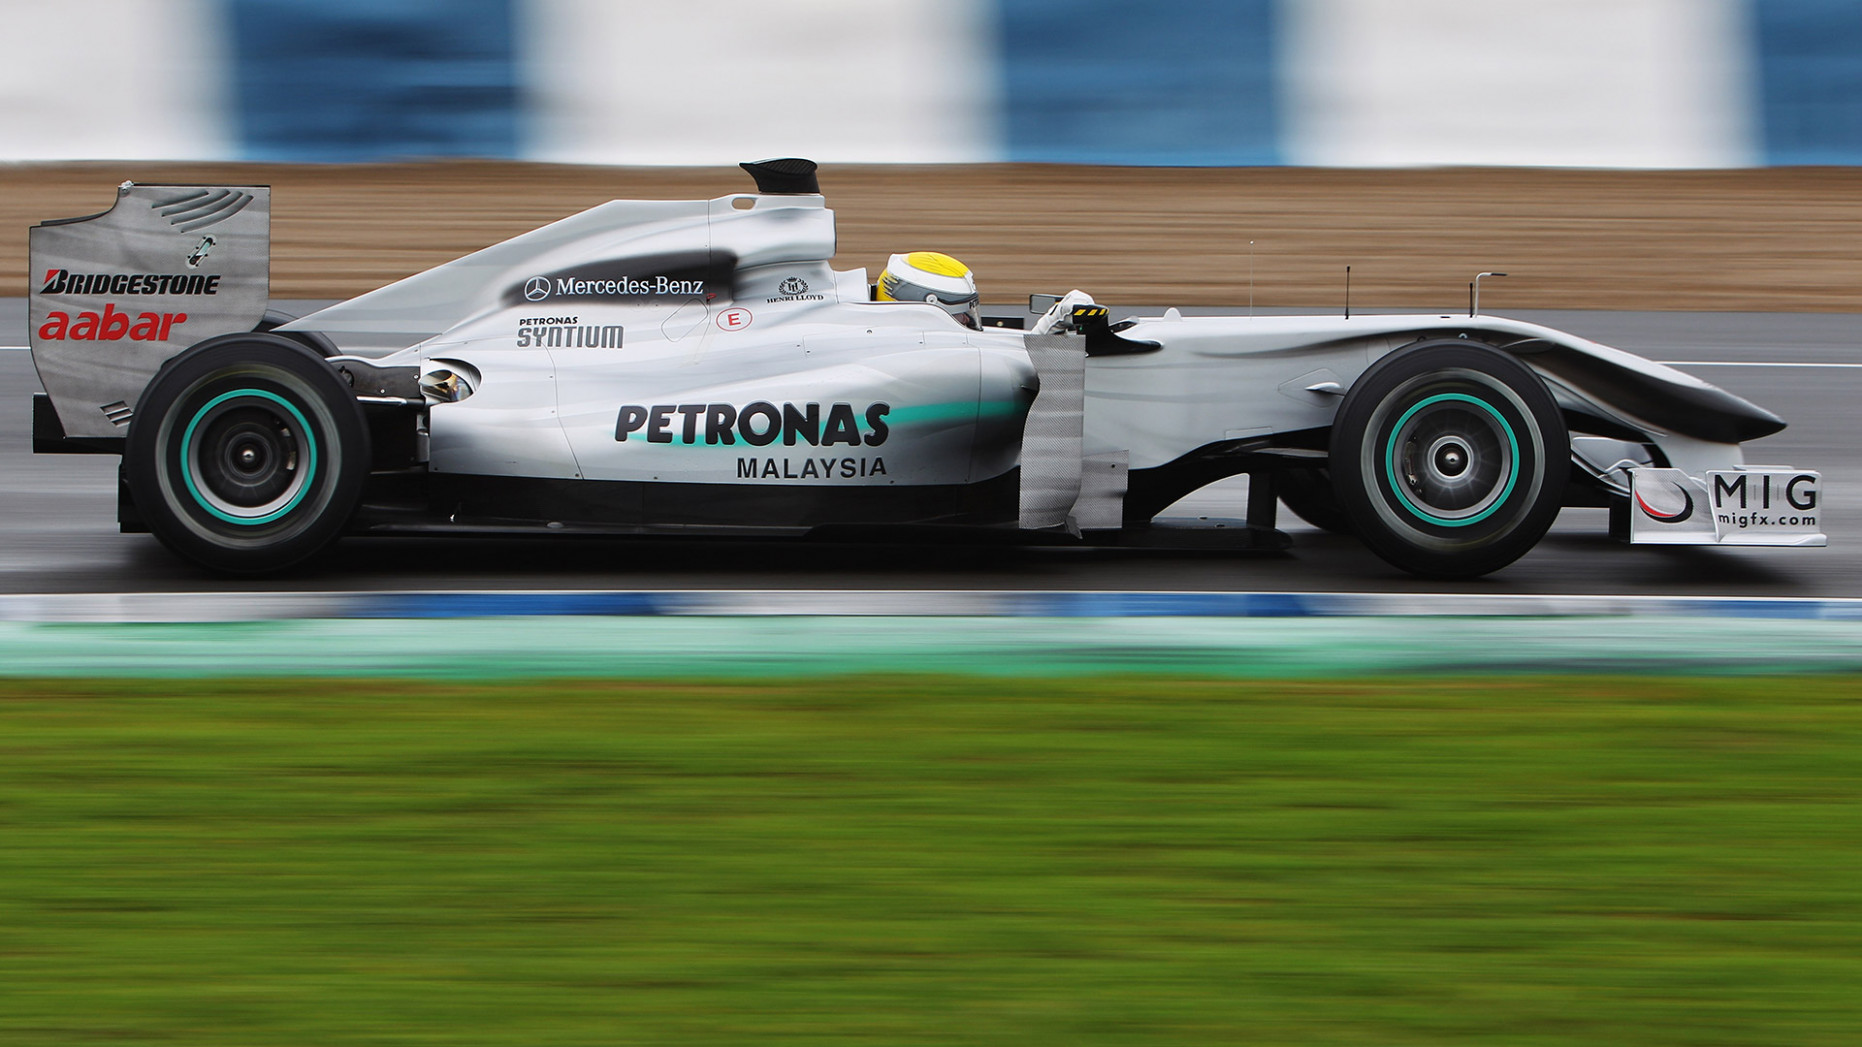 VOTE: Mercedes launch their 8 livery - from W8 to W8, which ..